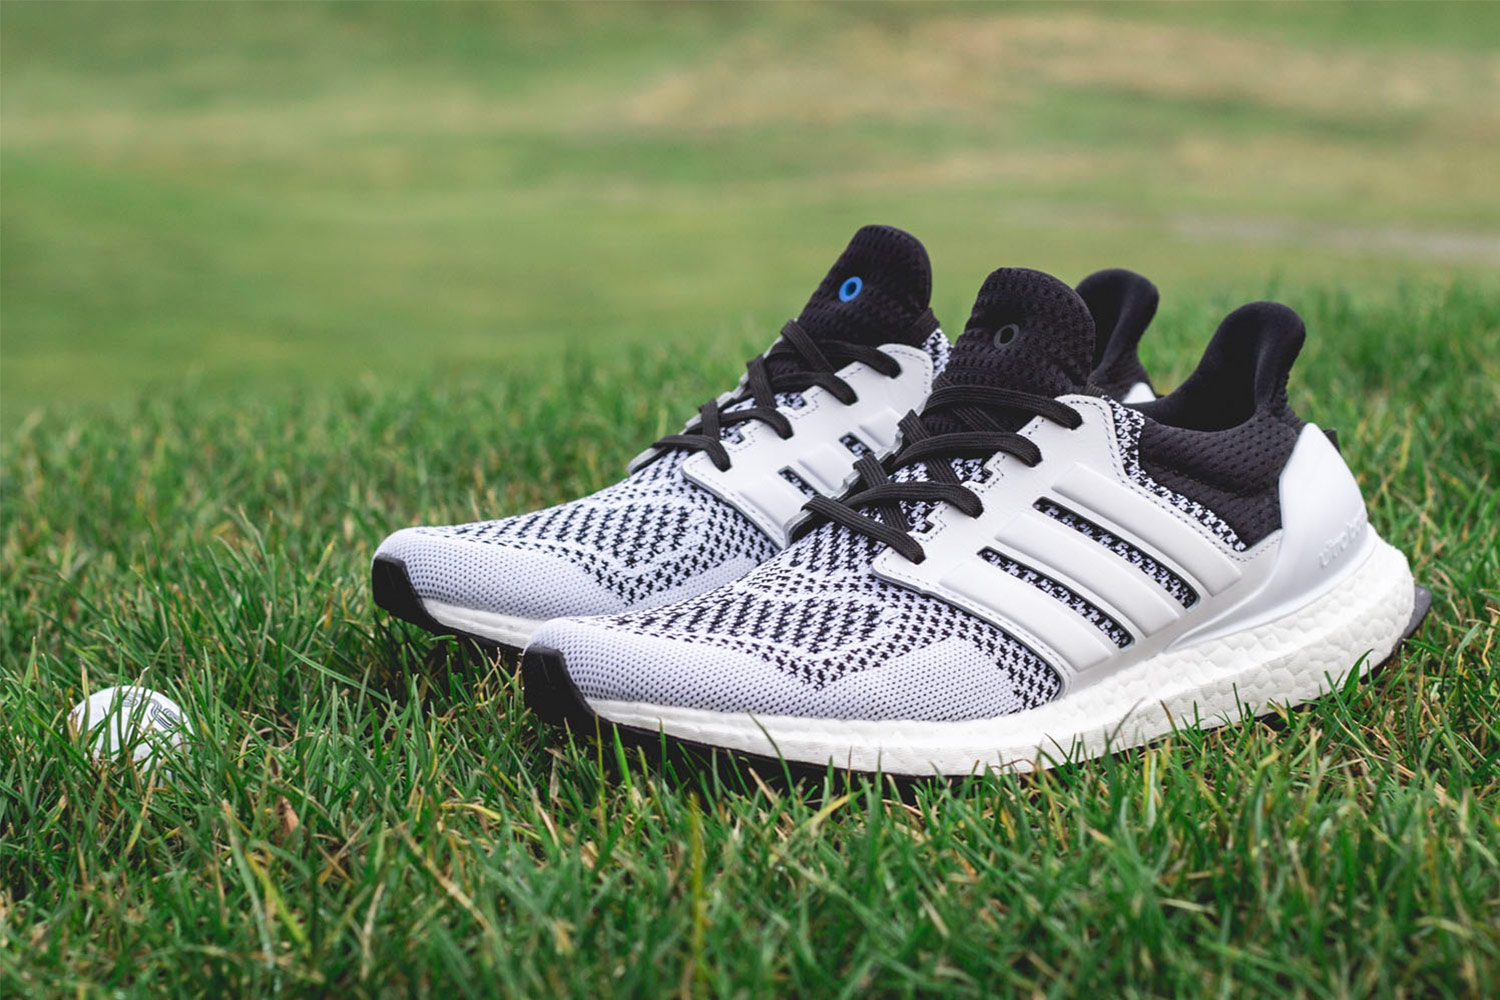 Adidas Ultra Boost x SNS 'Tee Time